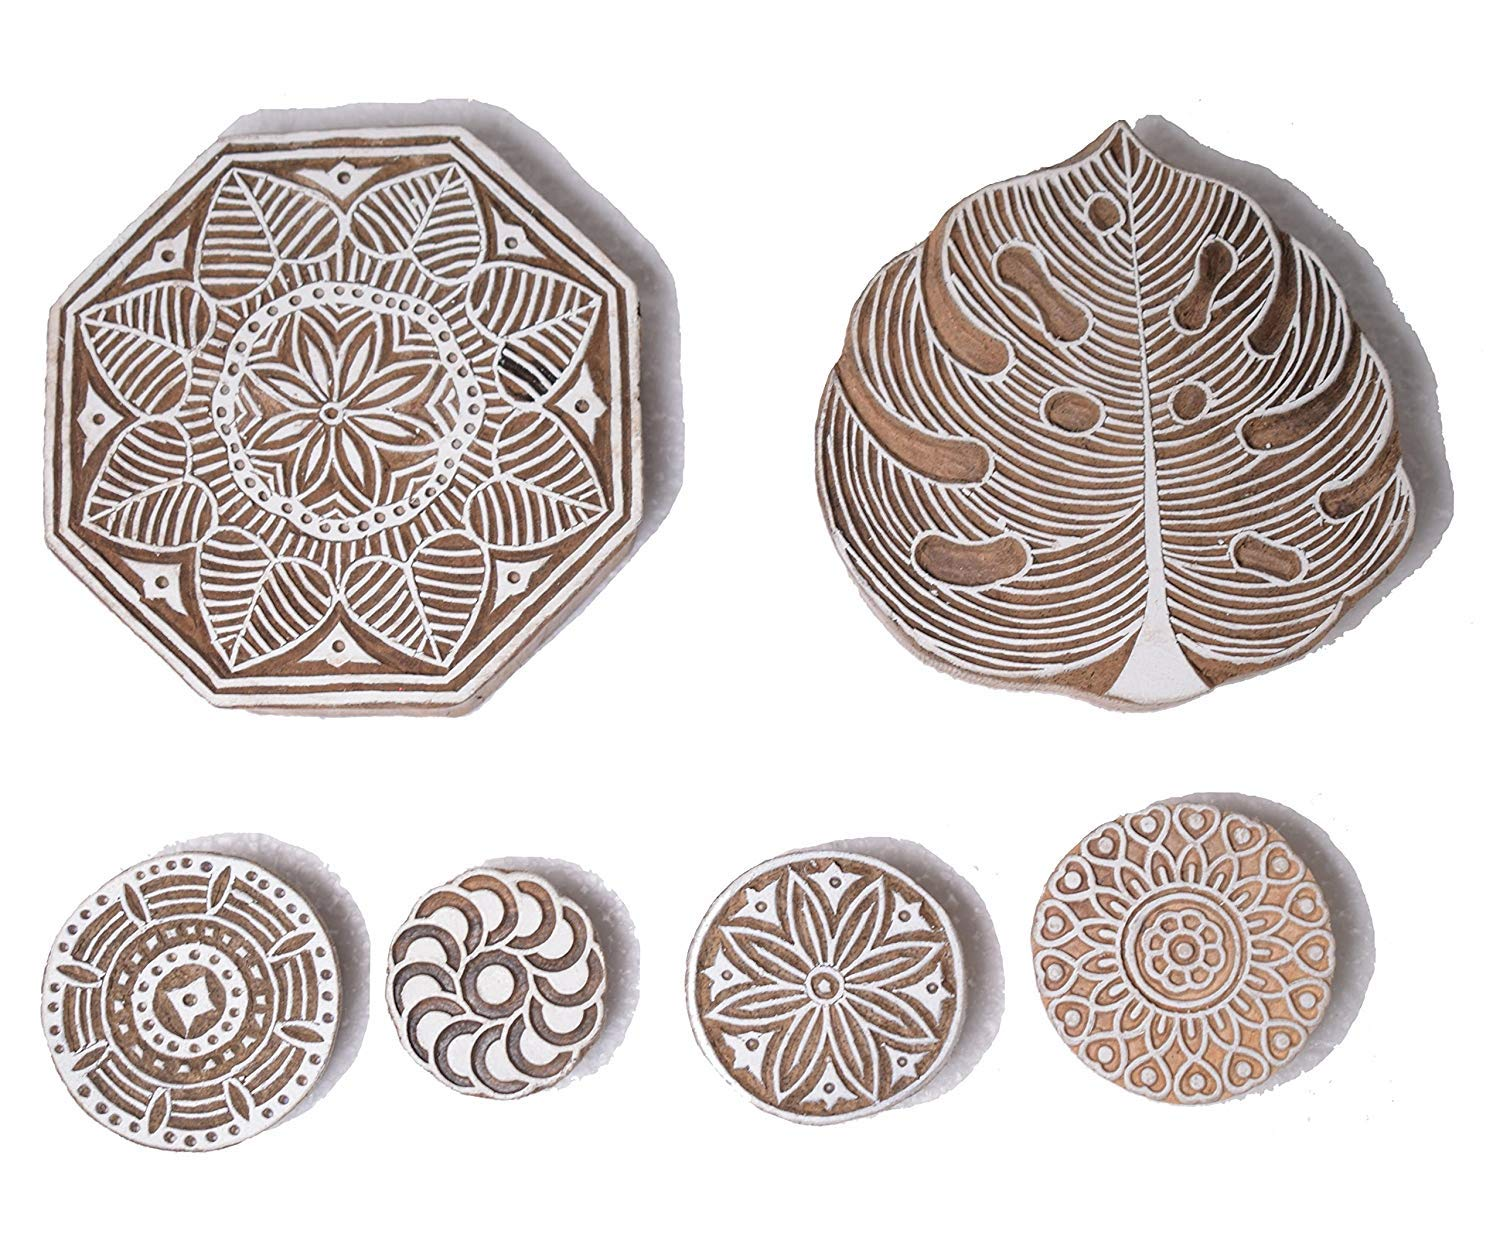 PARIJAT HANDICRAFT Printing Stamp Mughal Design Wooden Blocks (Set of 6) Hand-Carved for Saree Border Making Pottery Crafts Textile Printing